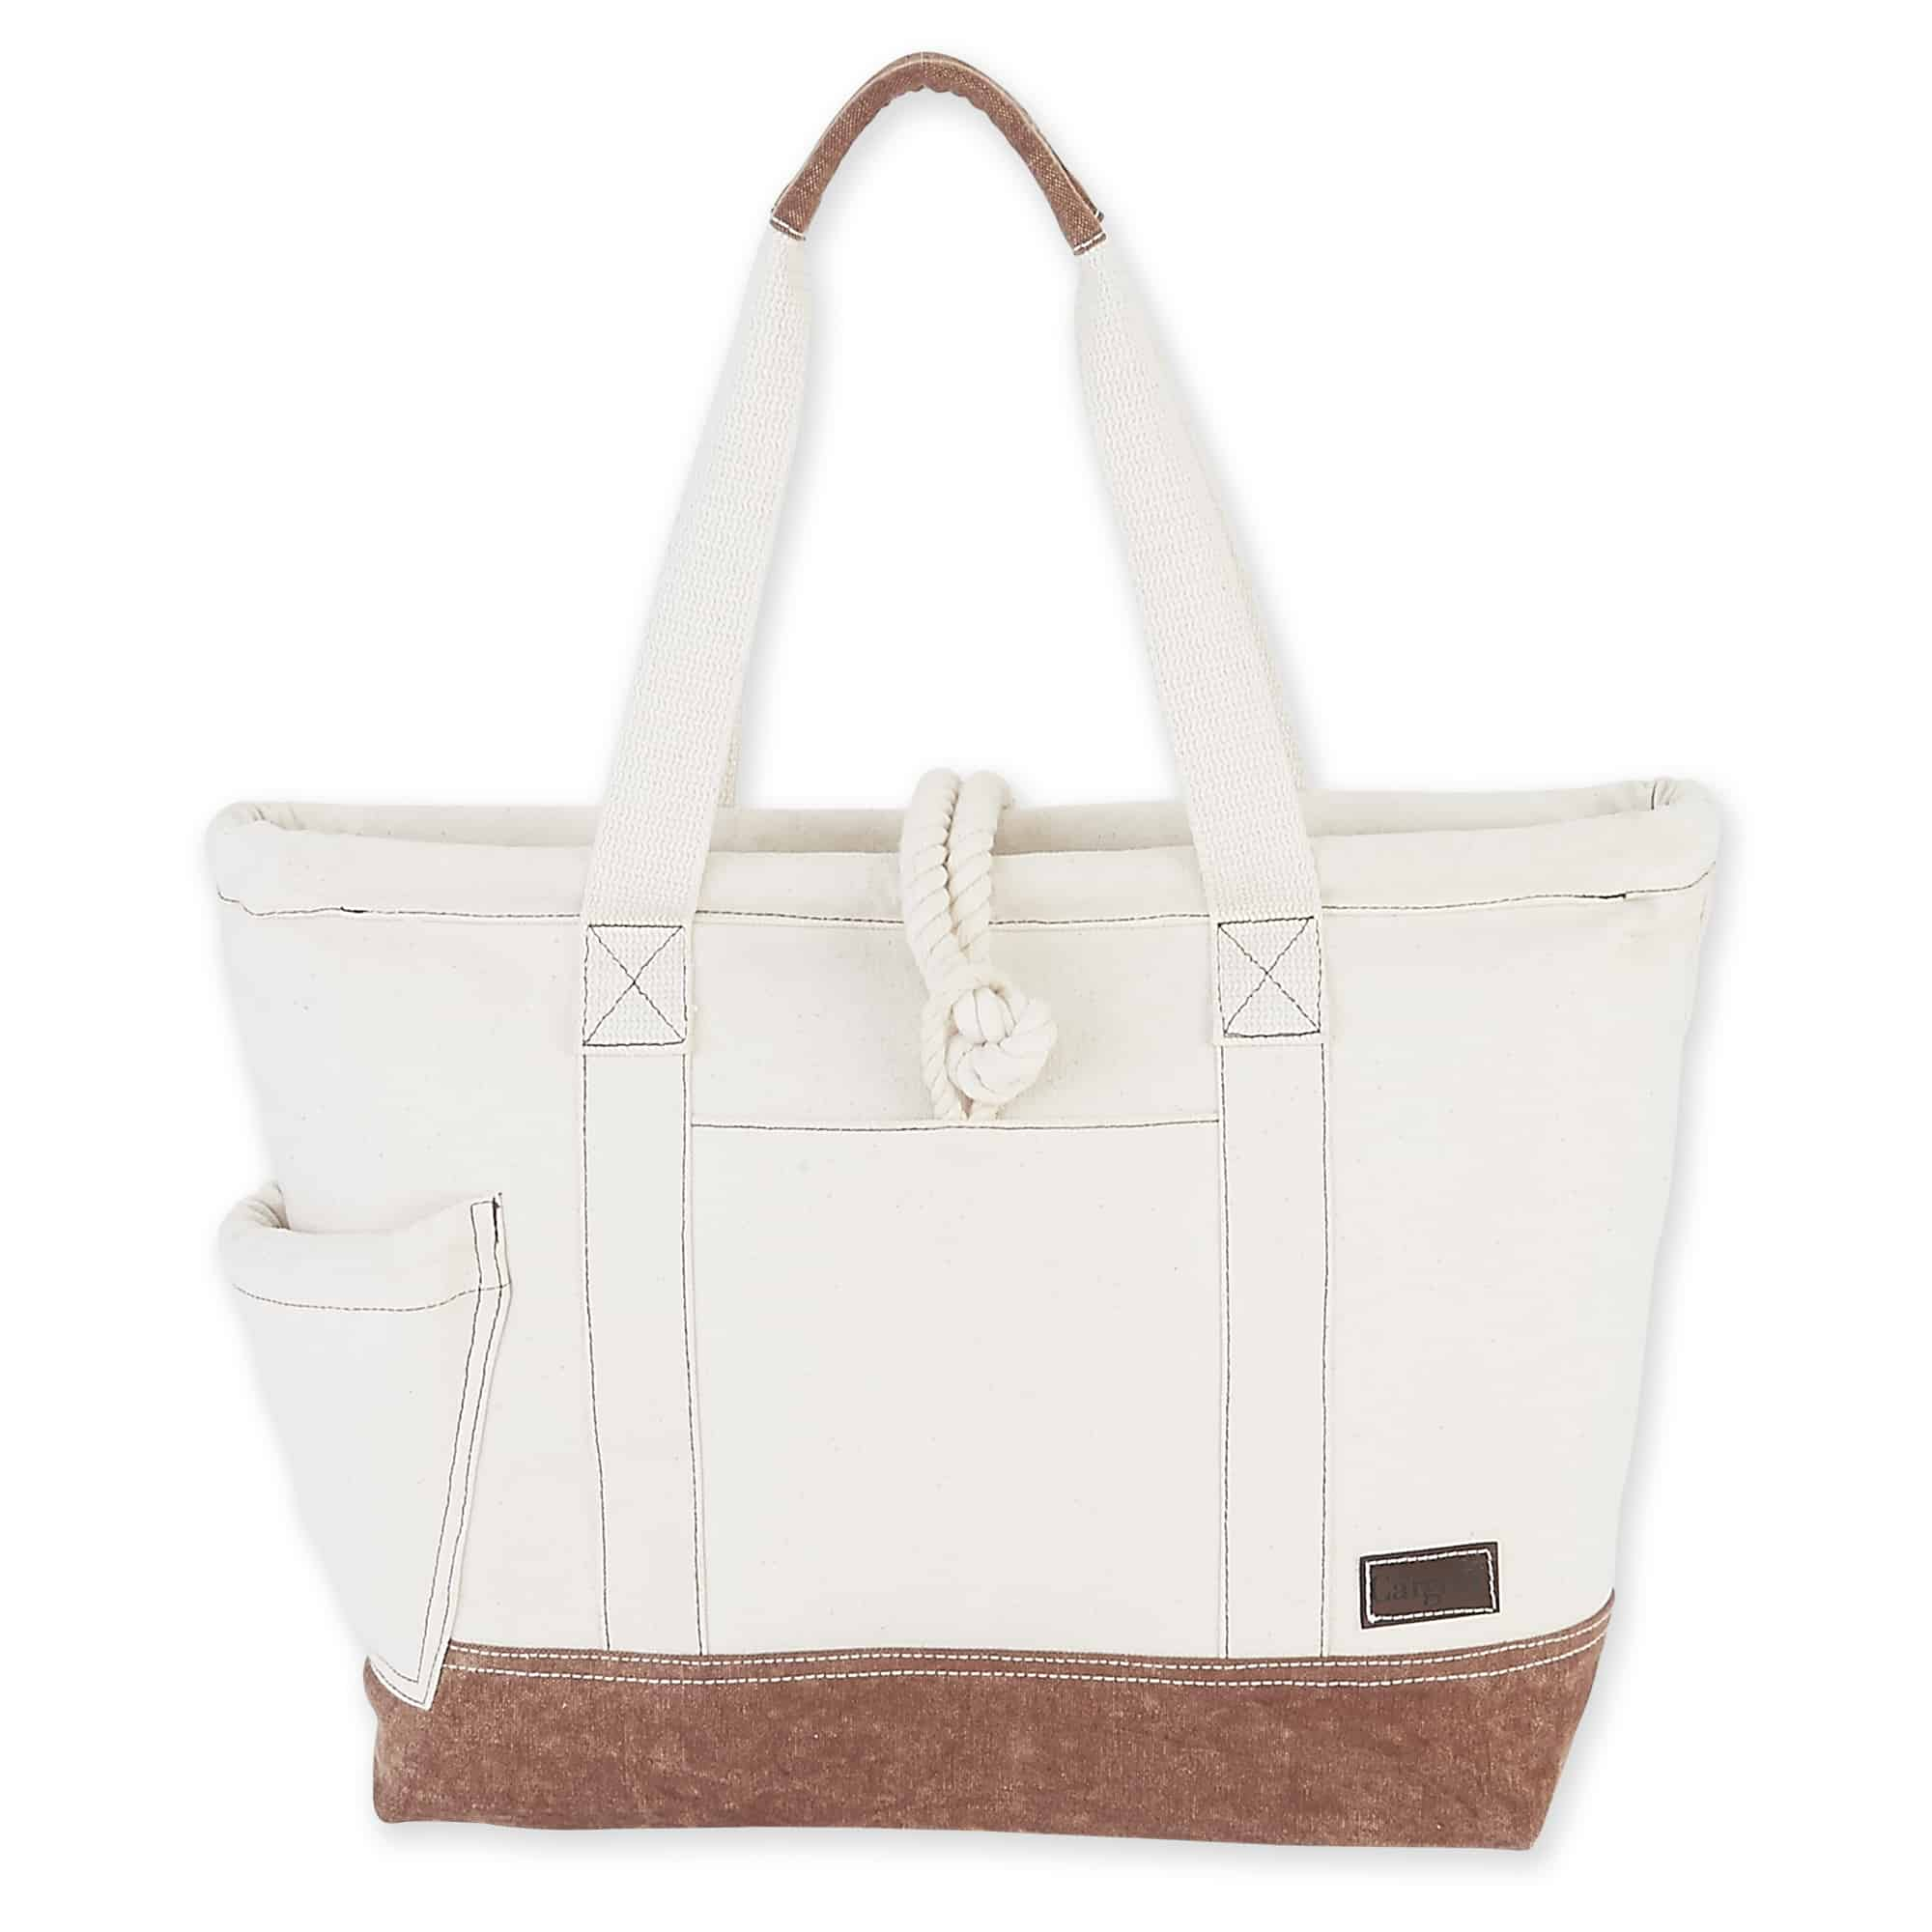 Regatta Oversized Tote by Sun N Sand - Brown